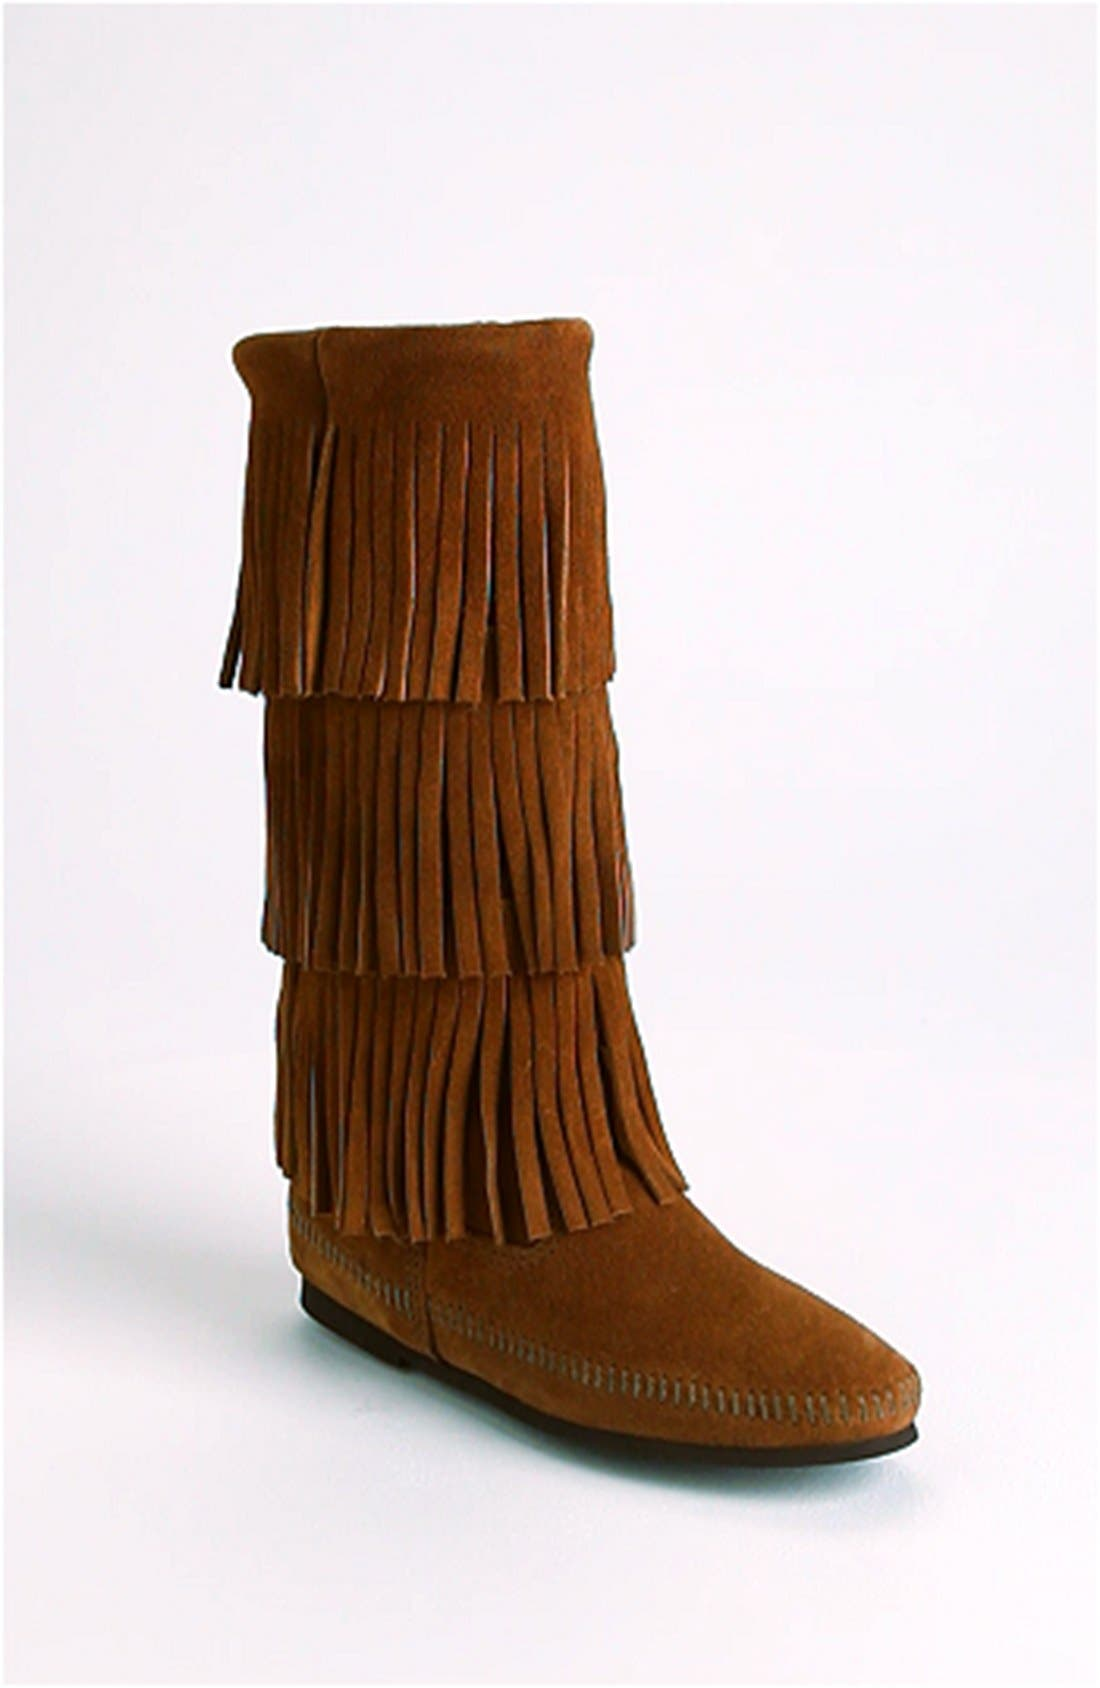 3-Layer Fringe Boot,                             Alternate thumbnail 5, color,                             BROWN SUEDE